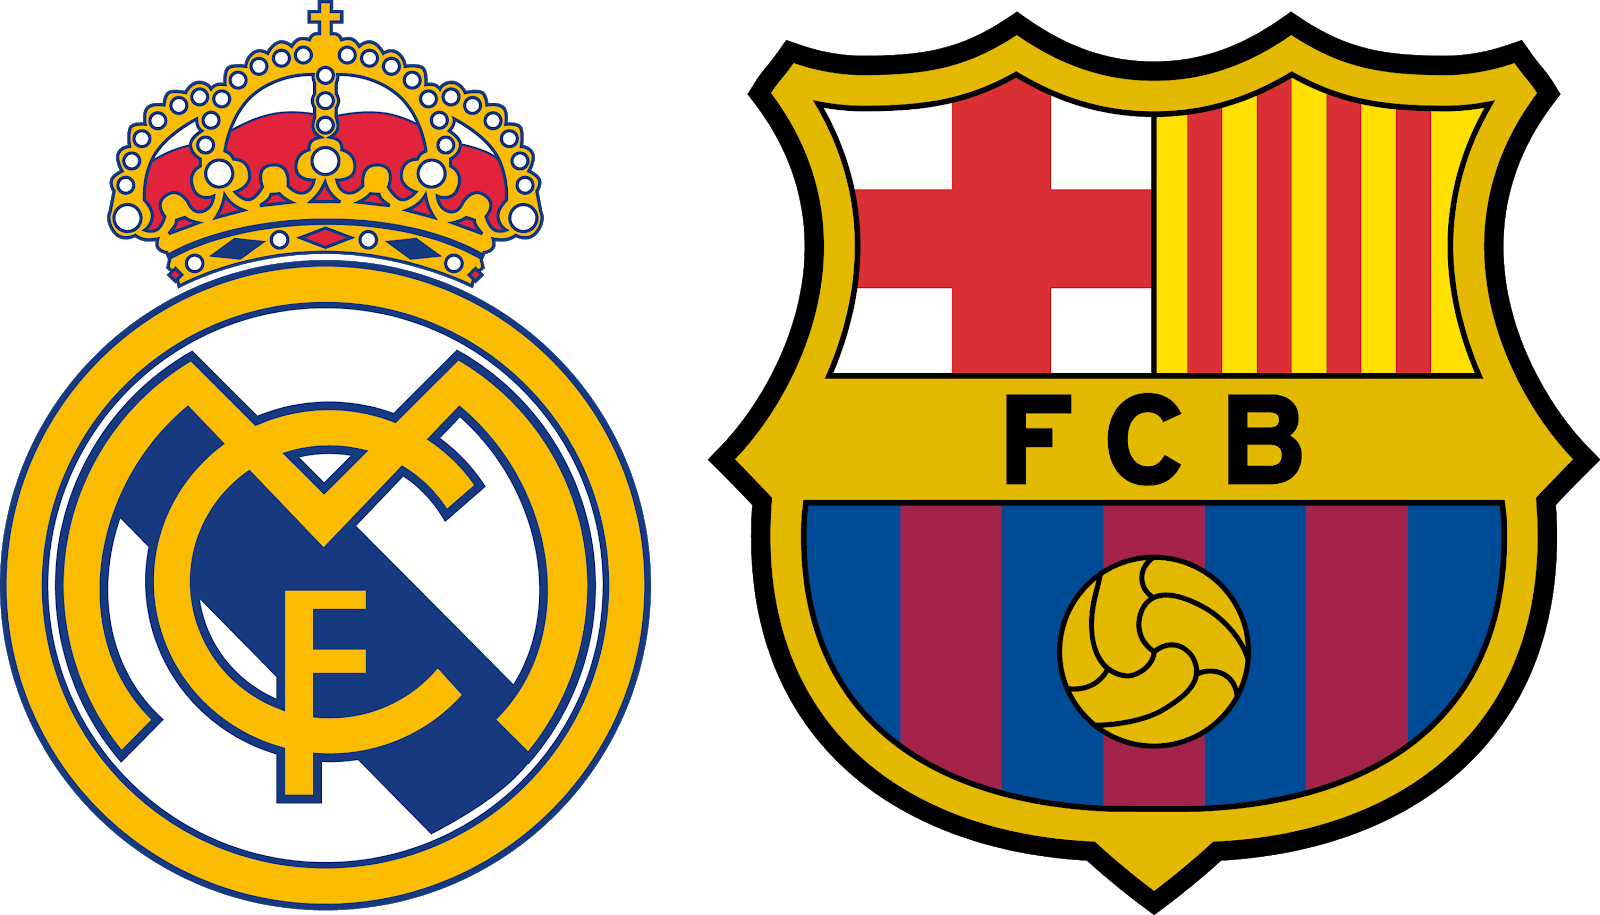 download logo fc barcelona real madrid svg eps png psd ai ...